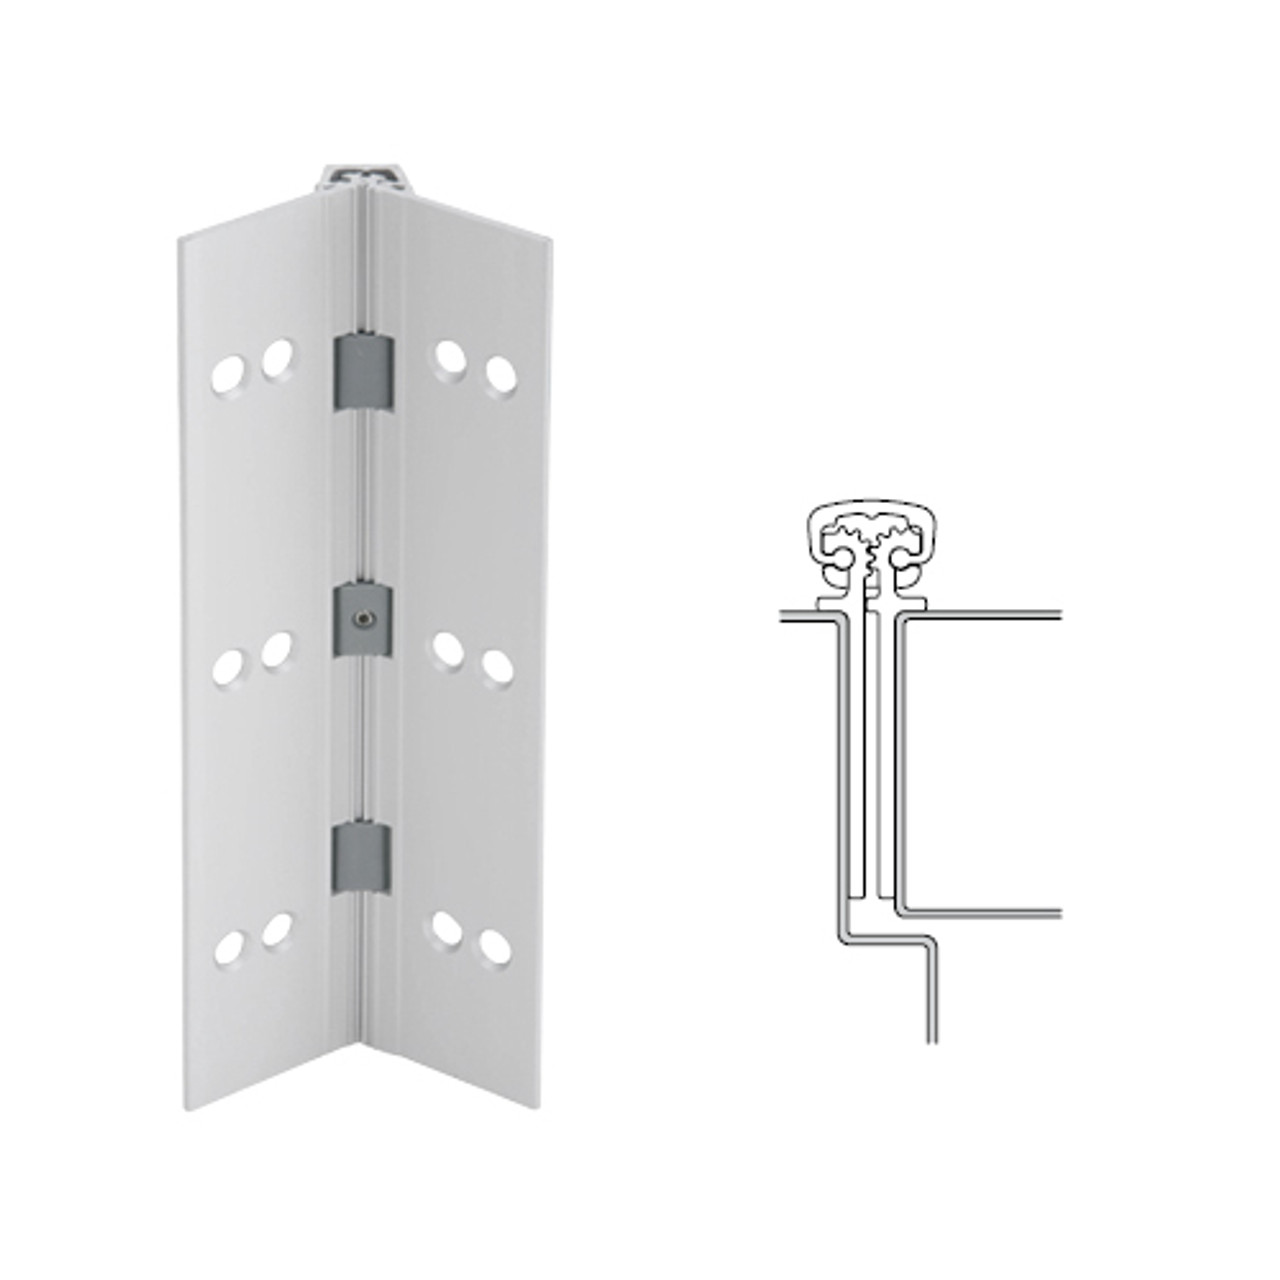 027XY-US28-120-TF IVES Full Mortise Continuous Geared Hinges with Thread Forming Screws in Satin Aluminum